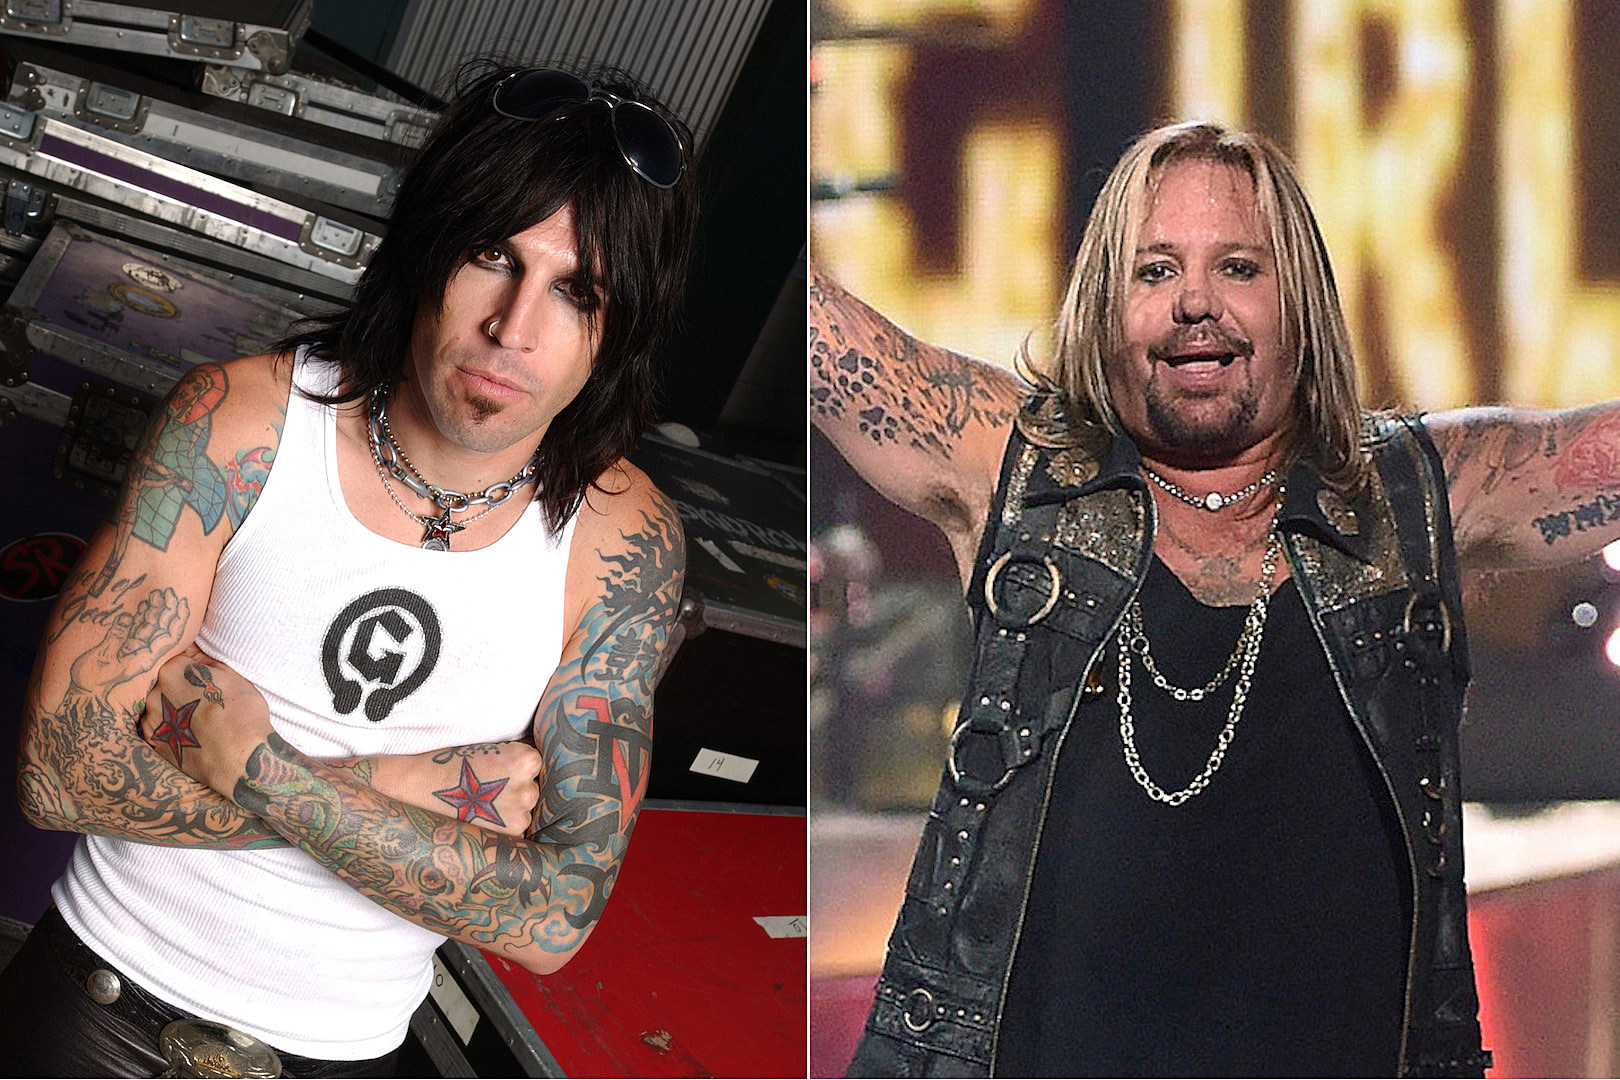 Phil Varone: 'Shame On' Motley Crue 'Fans' Who Are Mad About Reunion